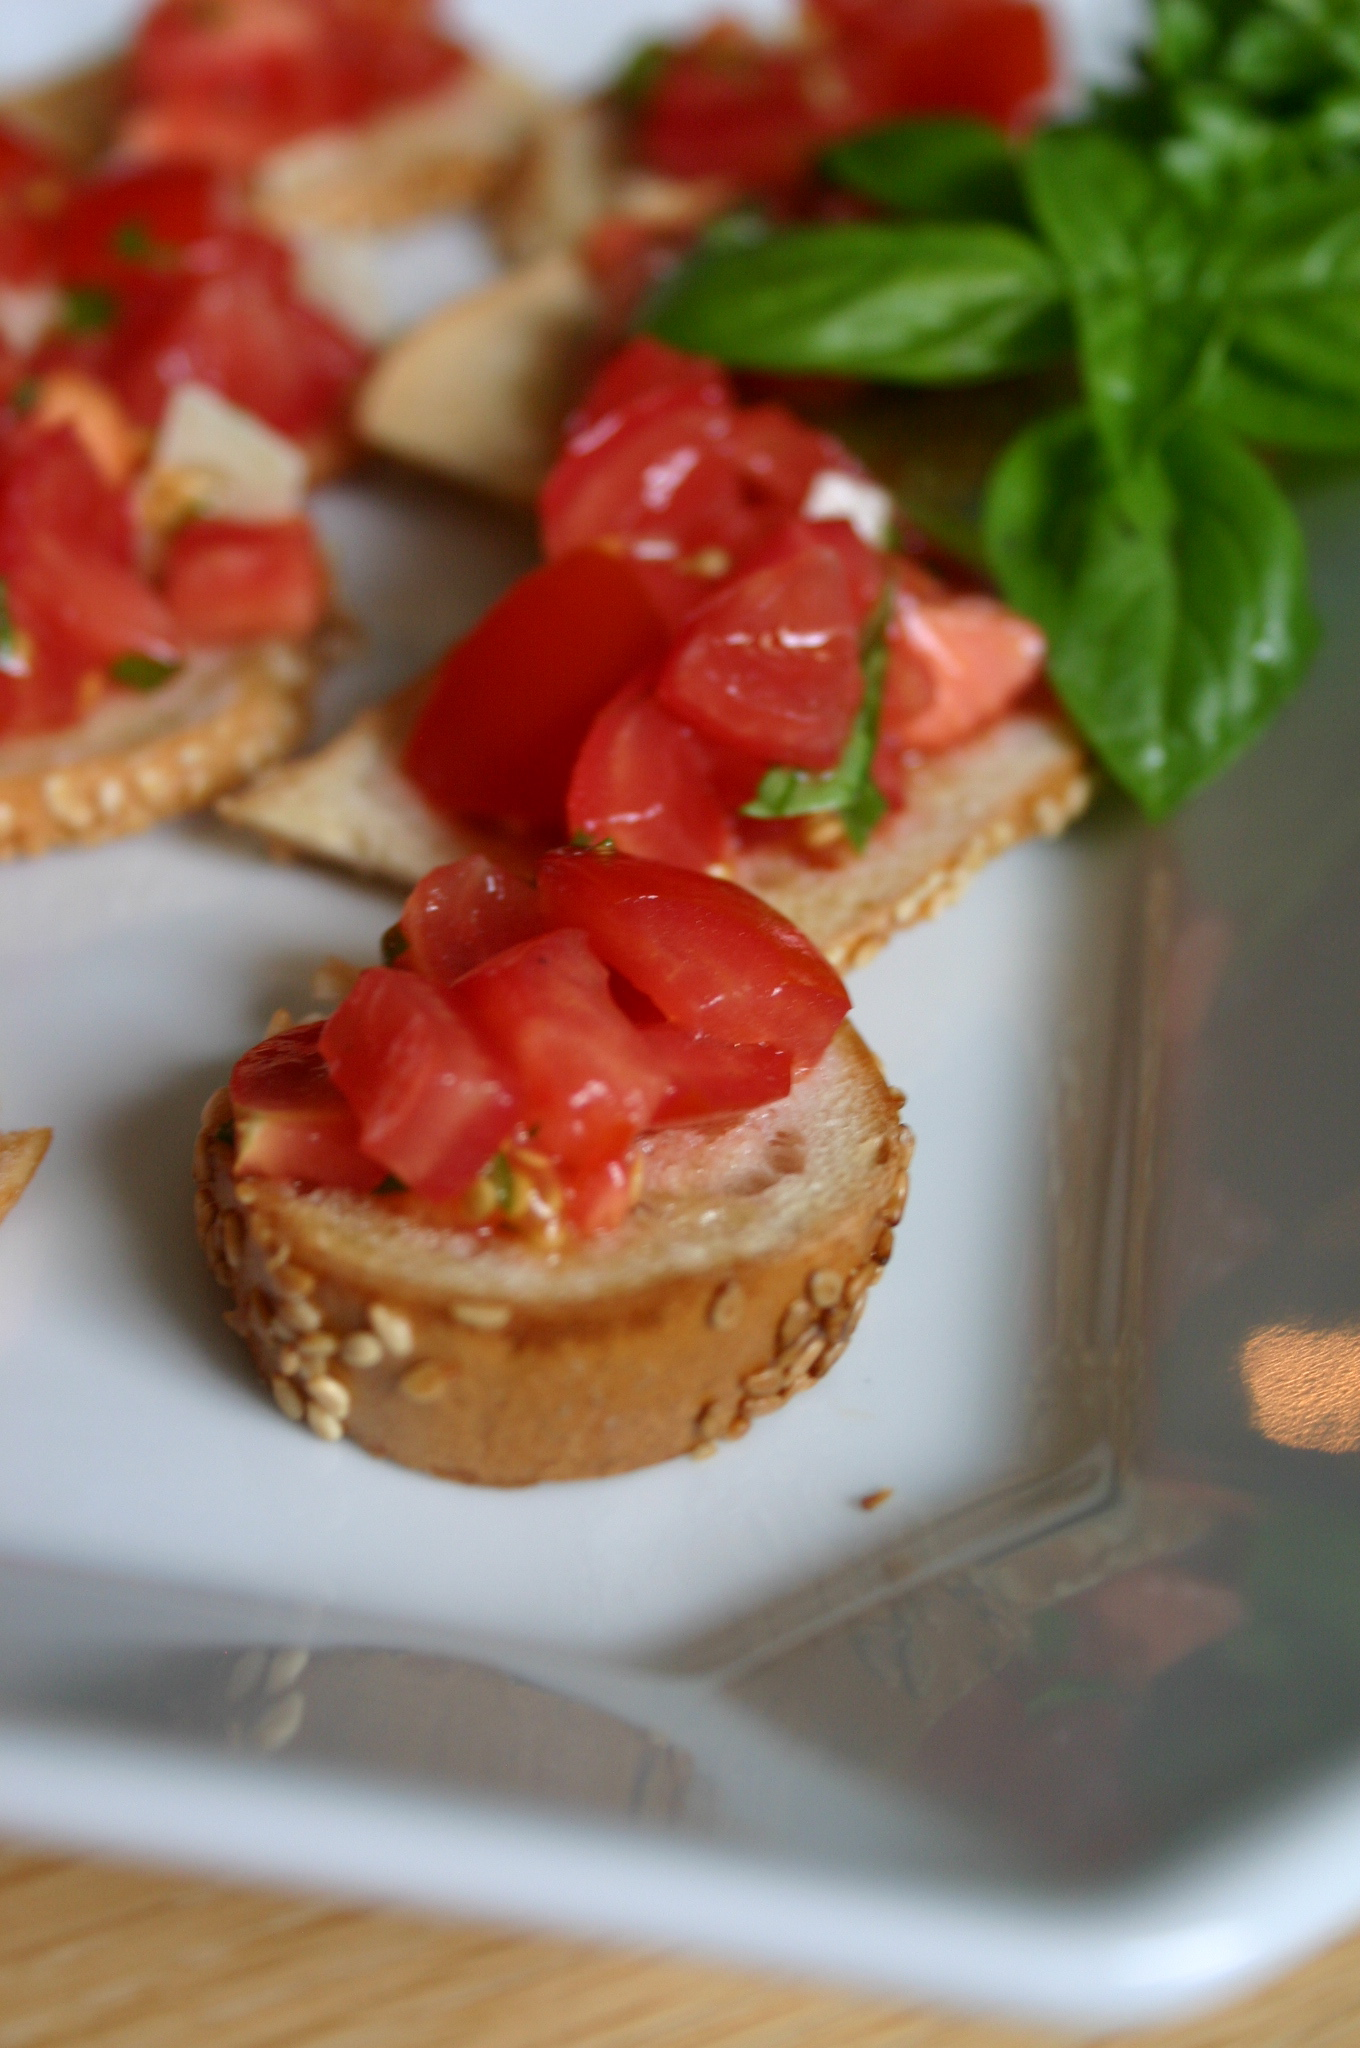 What to do with 2 left over bagels from Sunday morning breakfast? Try making this simple bagel bruschetta - you'll be surprised to see how many pieces you can get from 2 bagels.